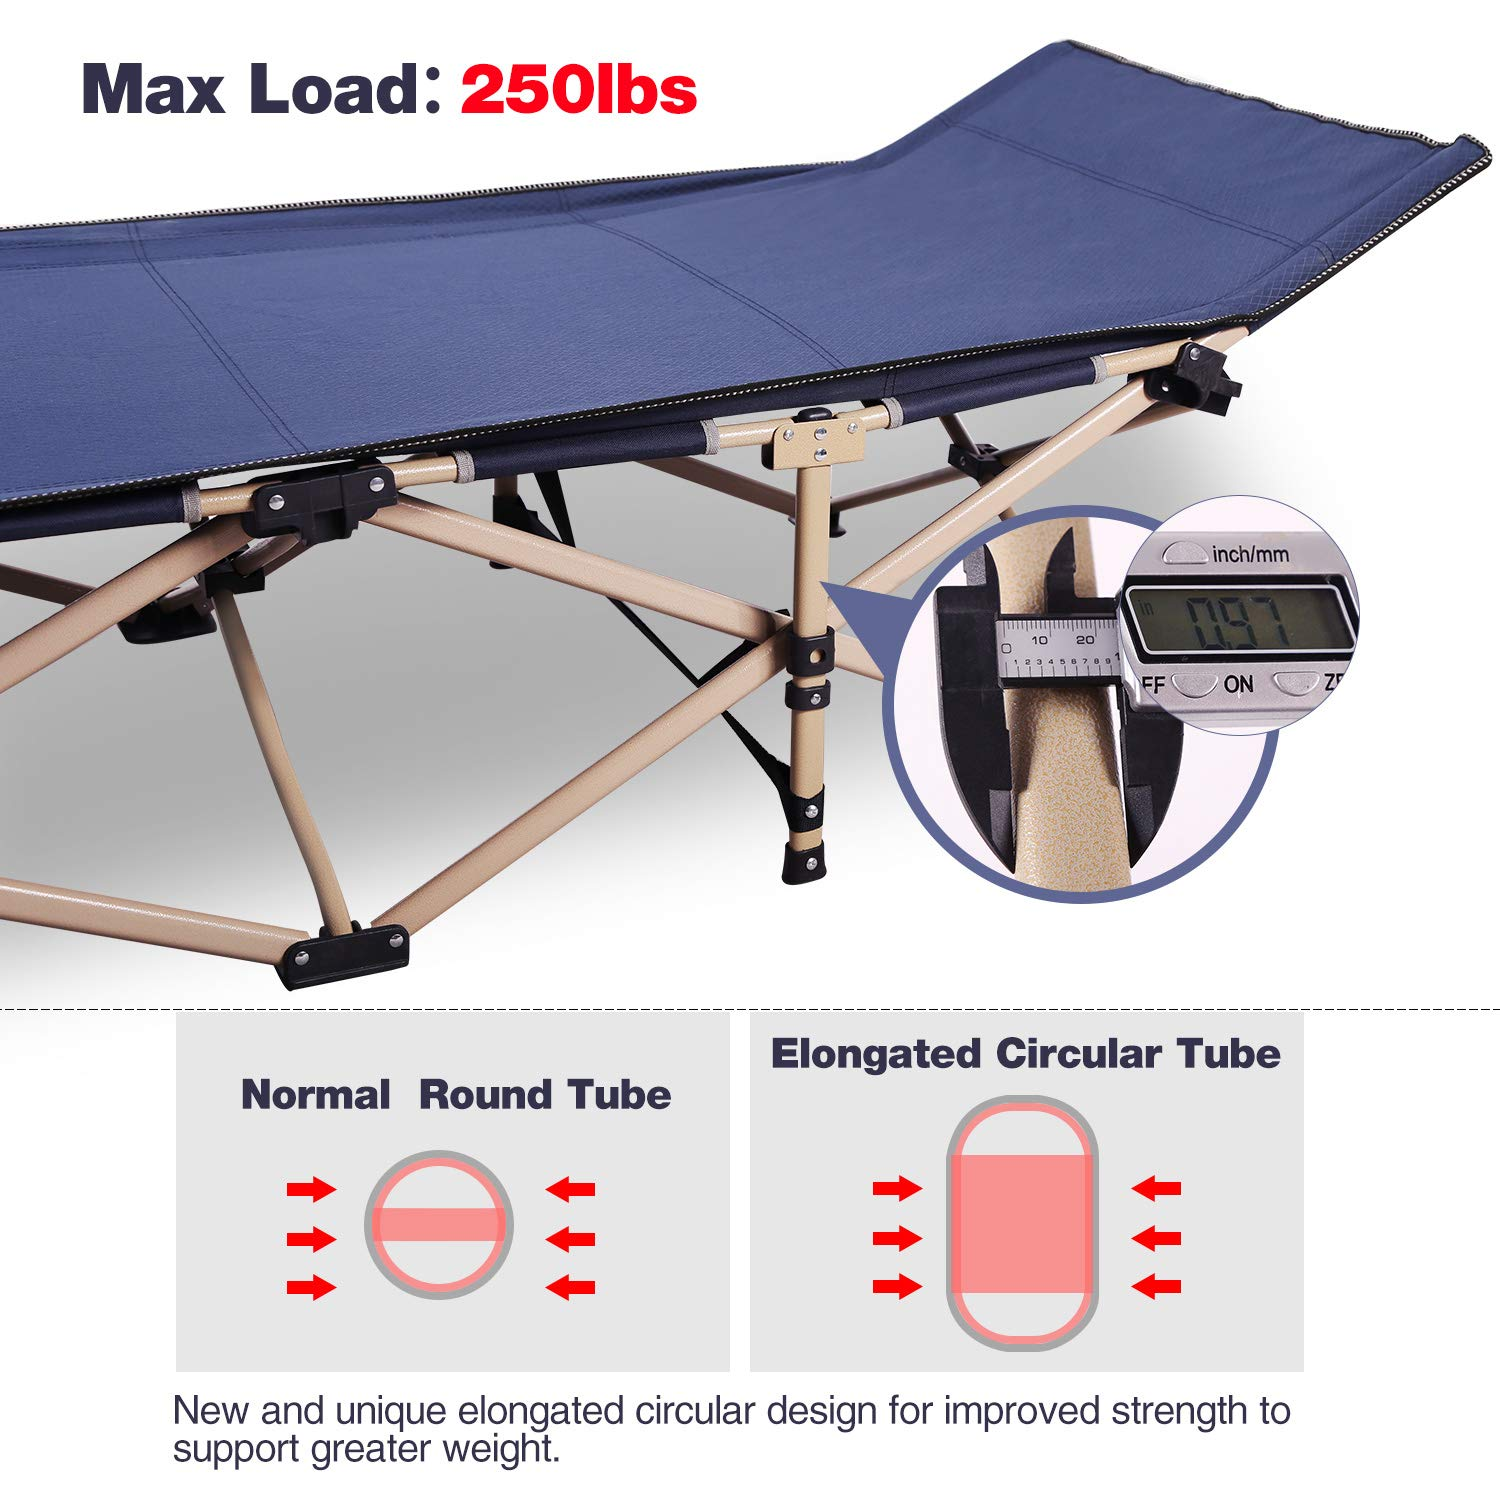 REDCAMP Folding Camping Cot for Adults, Heavy Duty Portable Sleeping Cot Bed with Storage Bag, Cot with Pillow XL Cot Blue Army Green